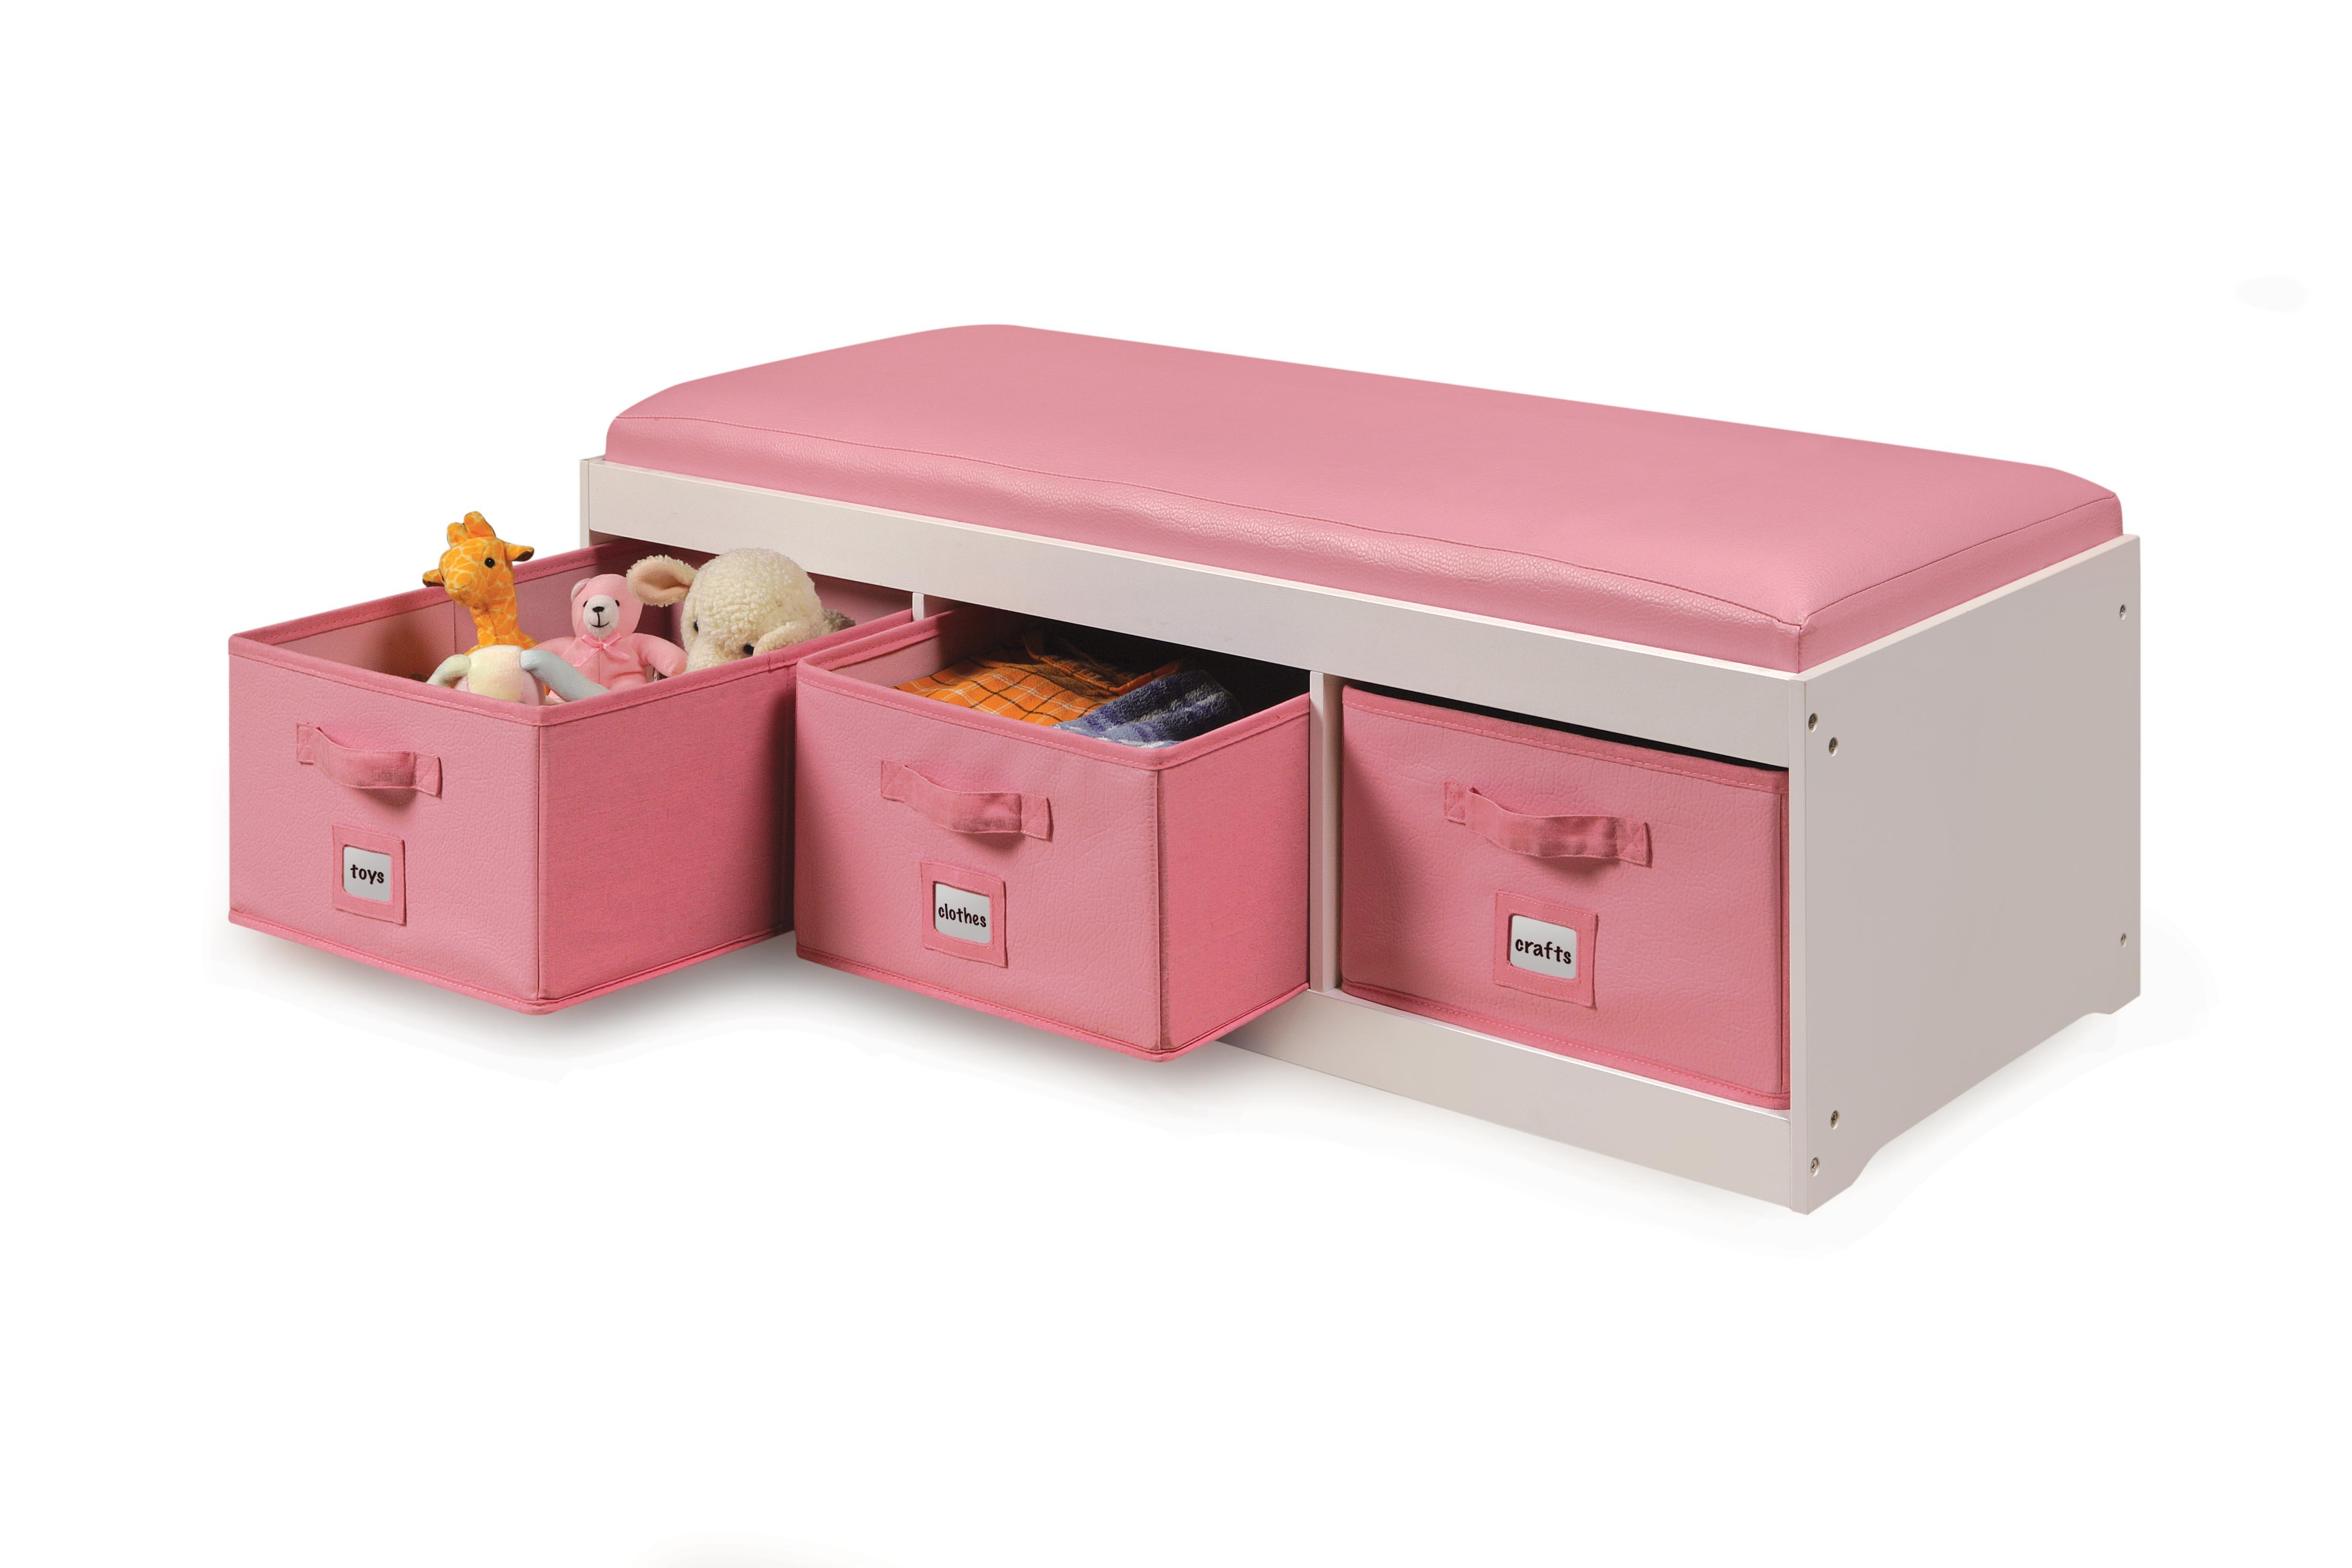 View larger  sc 1 st  Amazon.com & Amazon.com : Badger Basket Kidu0027s Storage Bench with Cushion and 3 ... islam-shia.org